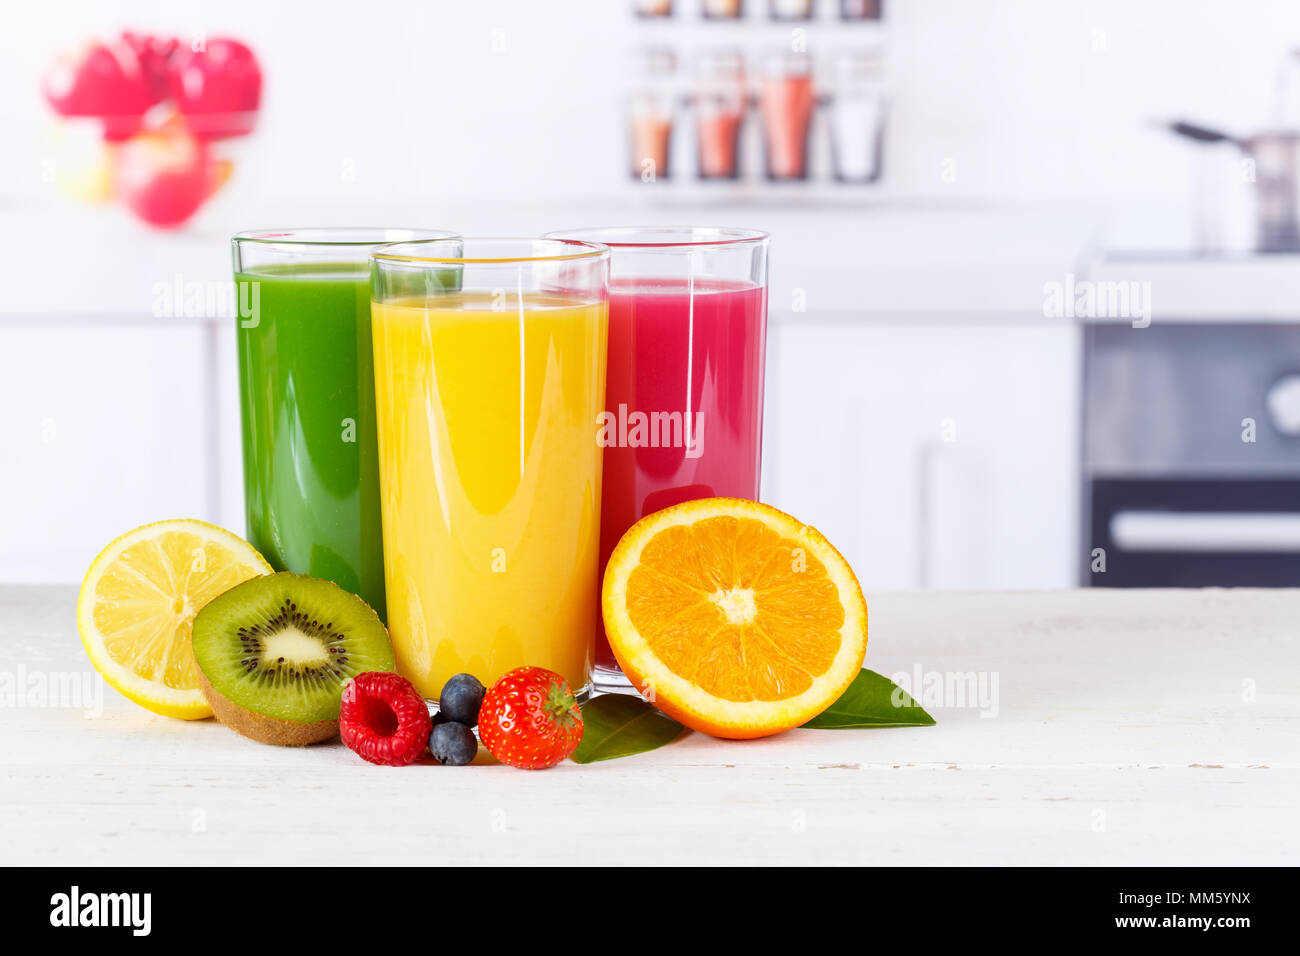 Juice smoothie smoothies orange oranges fruit fruits fresh drink - Stock Image